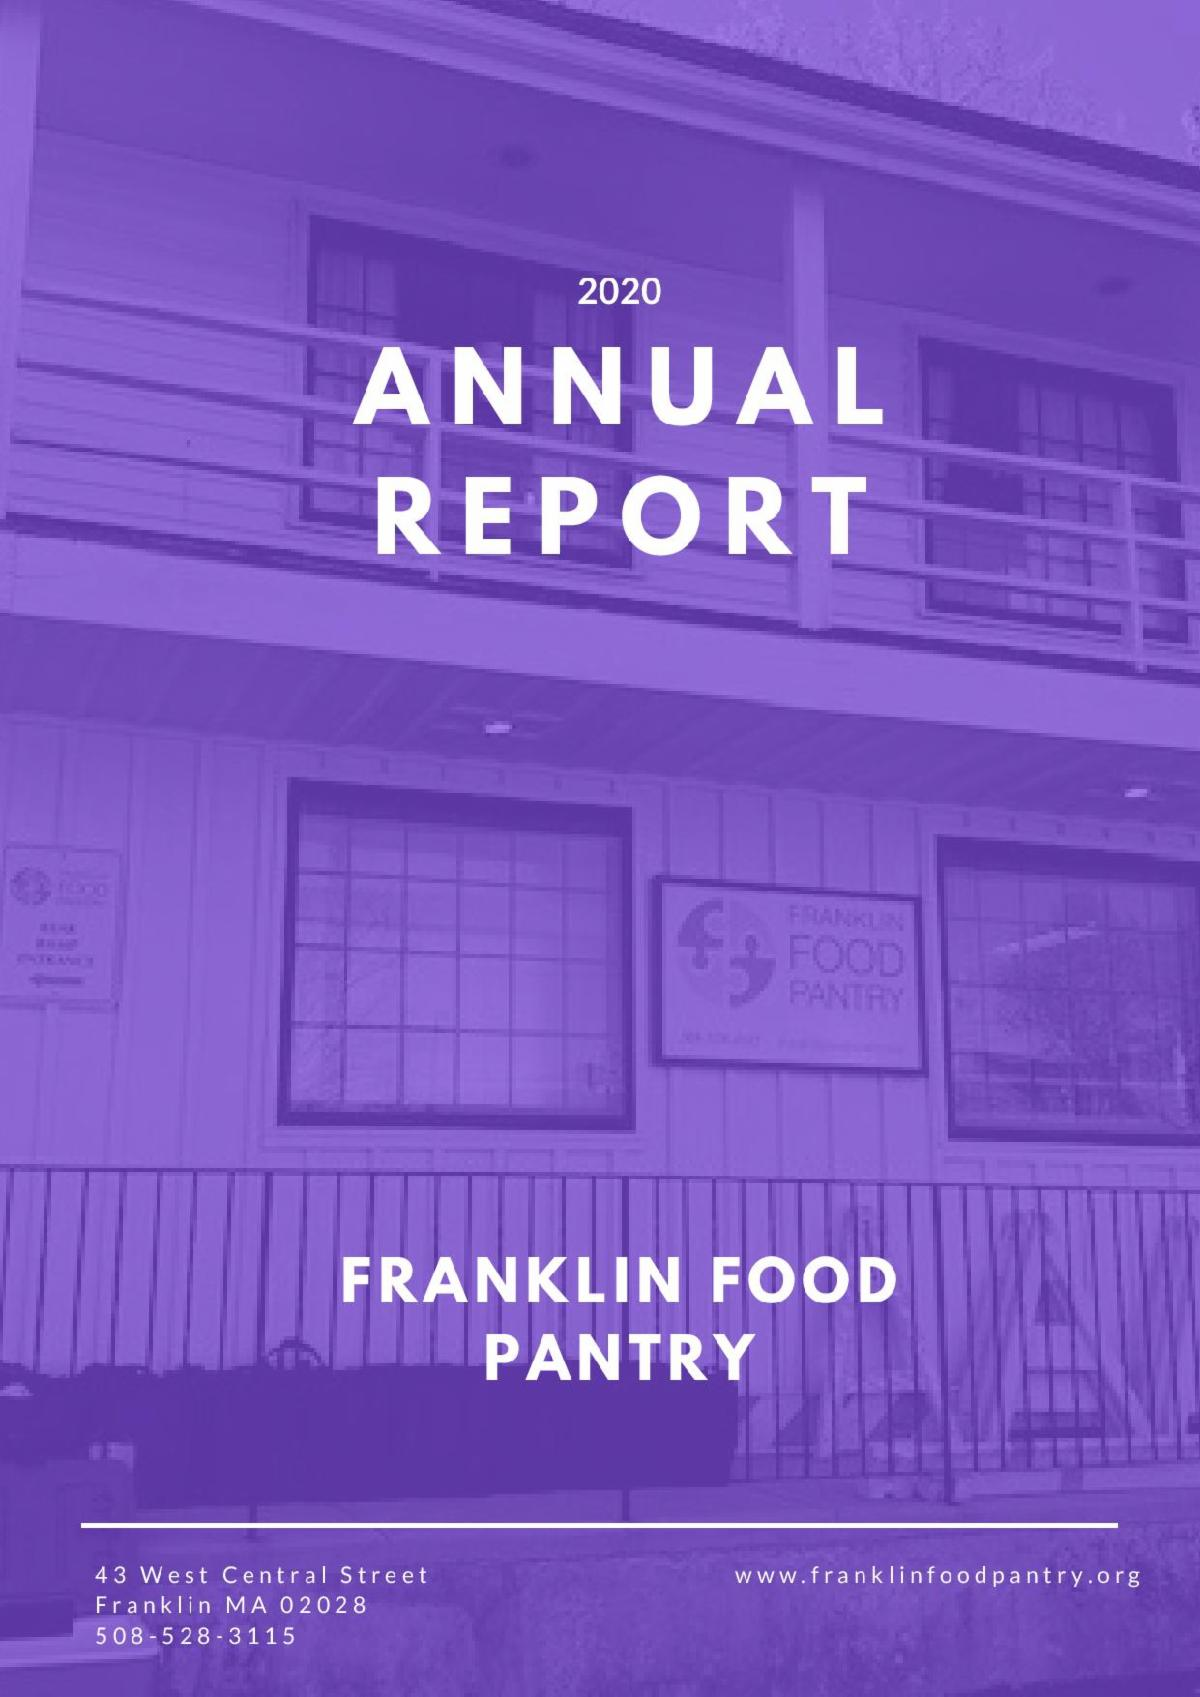 Introducing our Annual Report